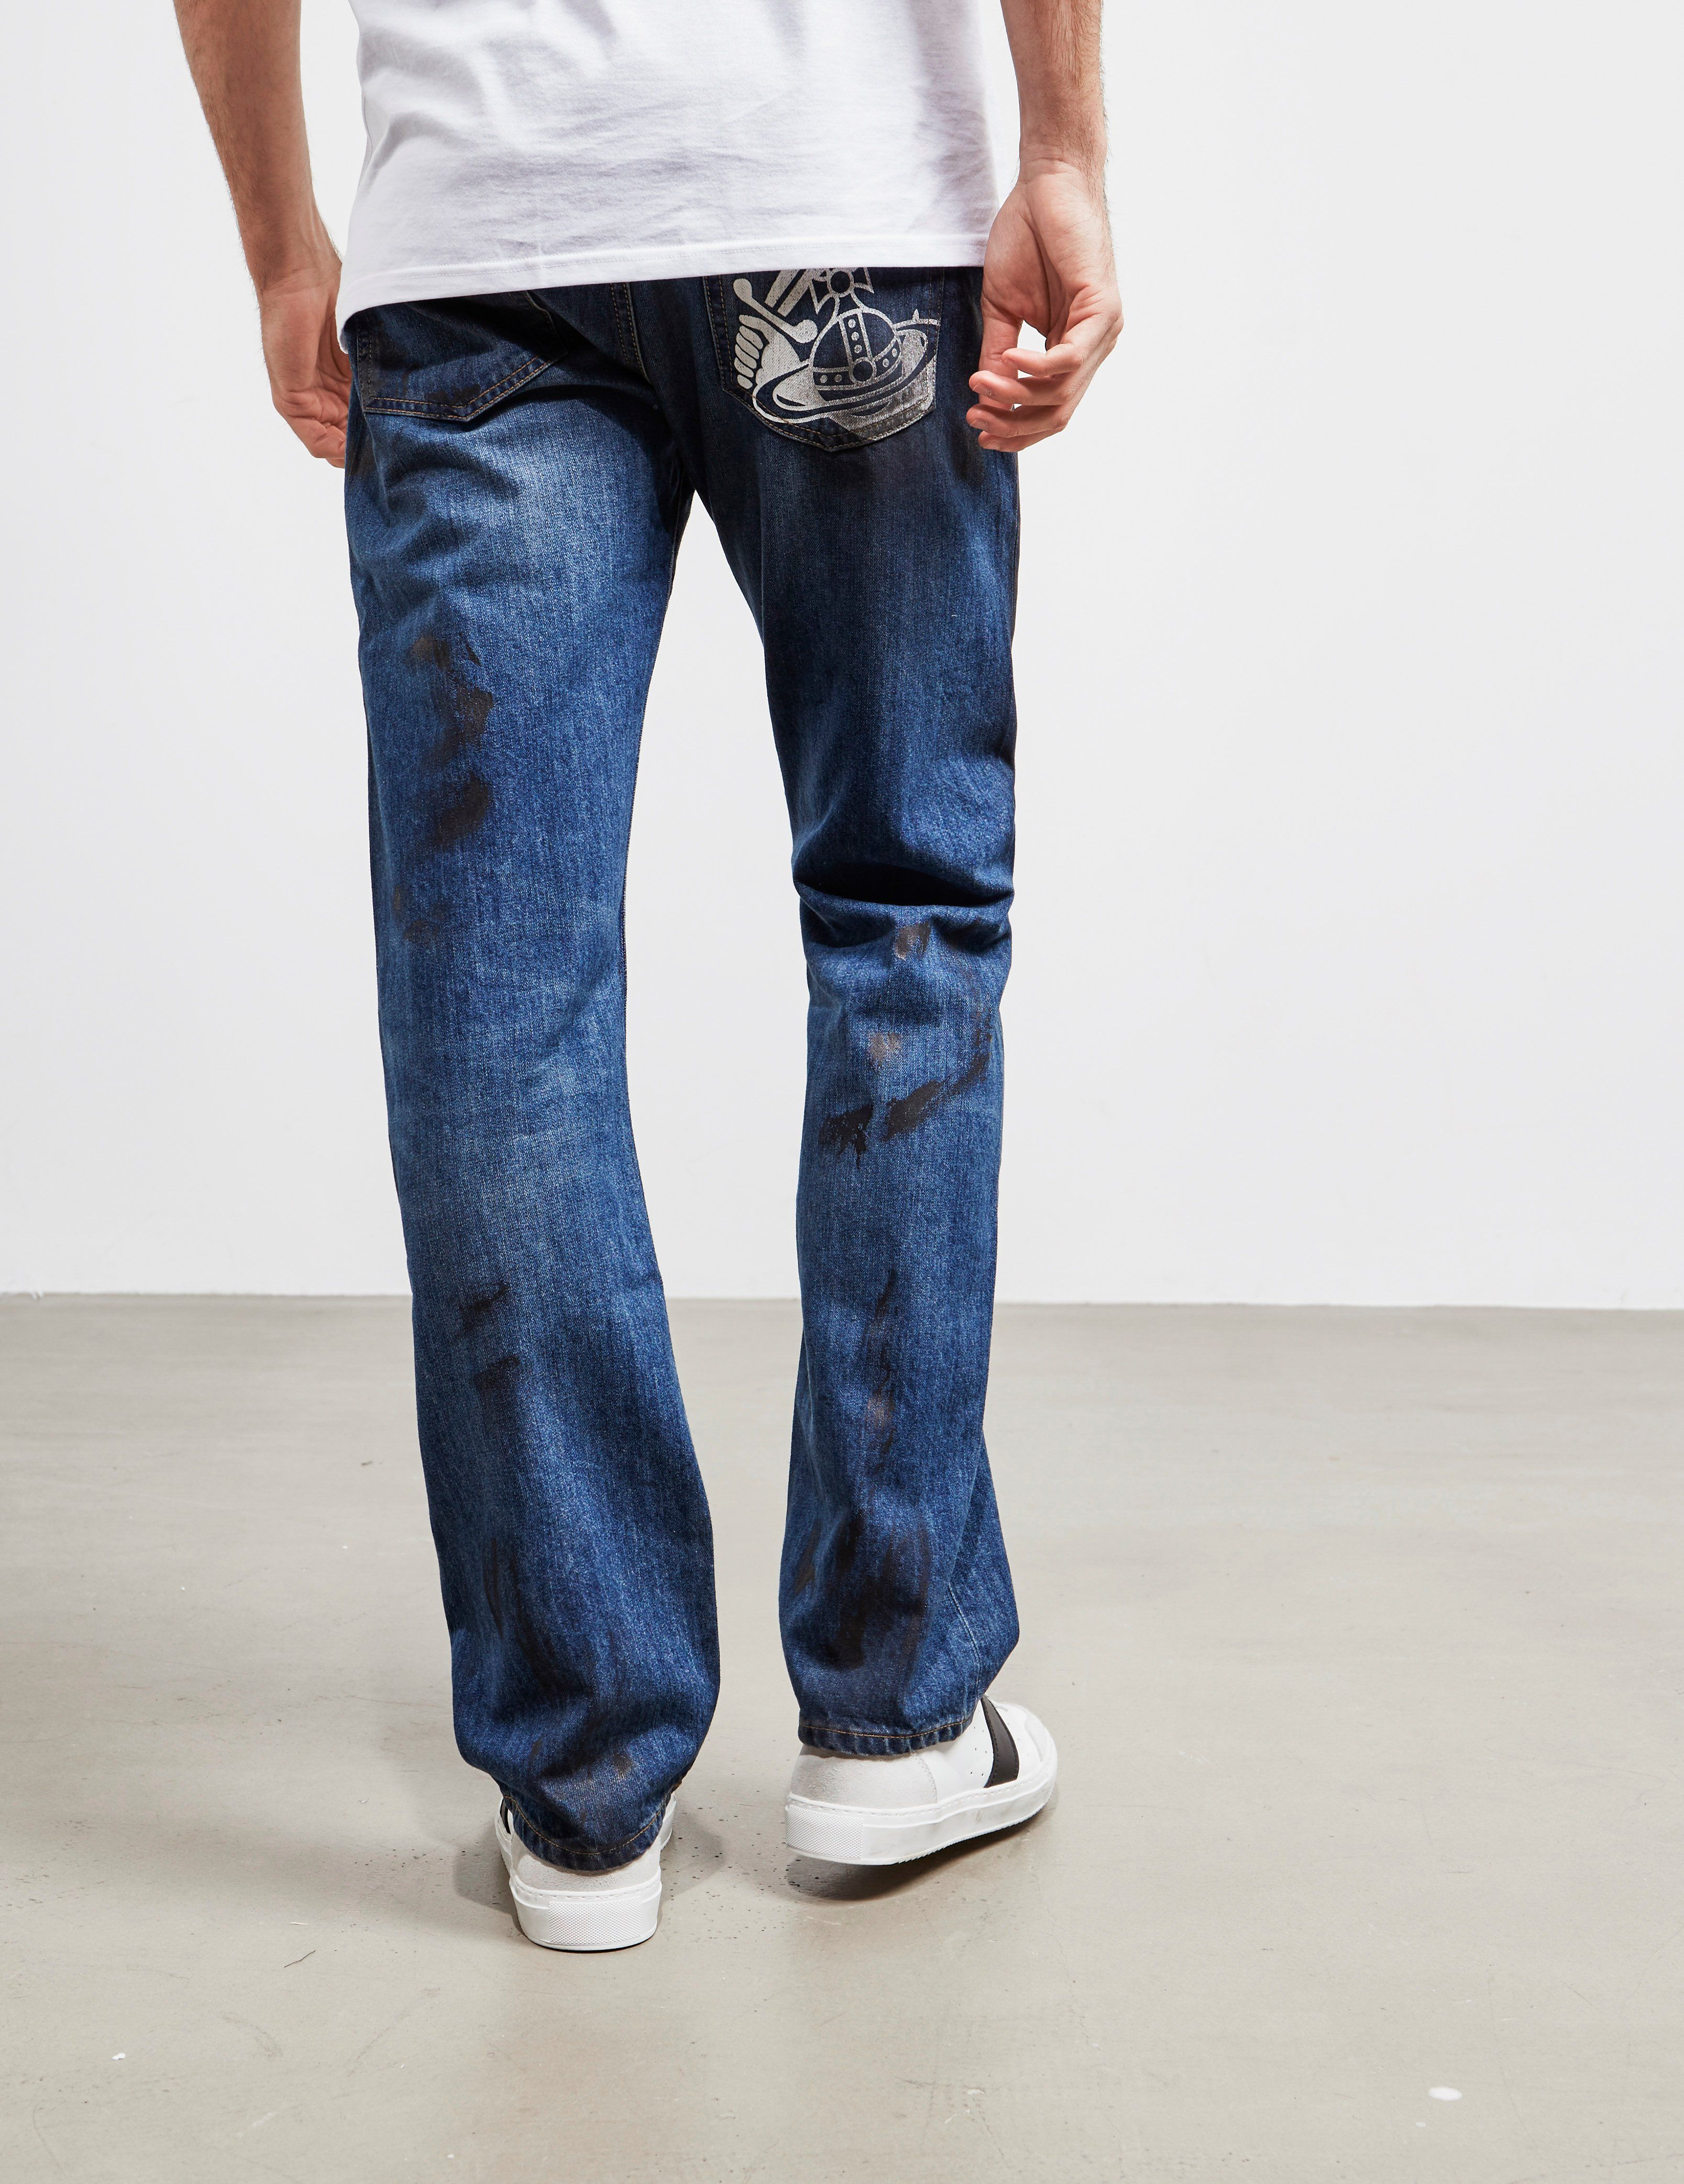 Vivienne Westwood Anglomania Harris Jeans